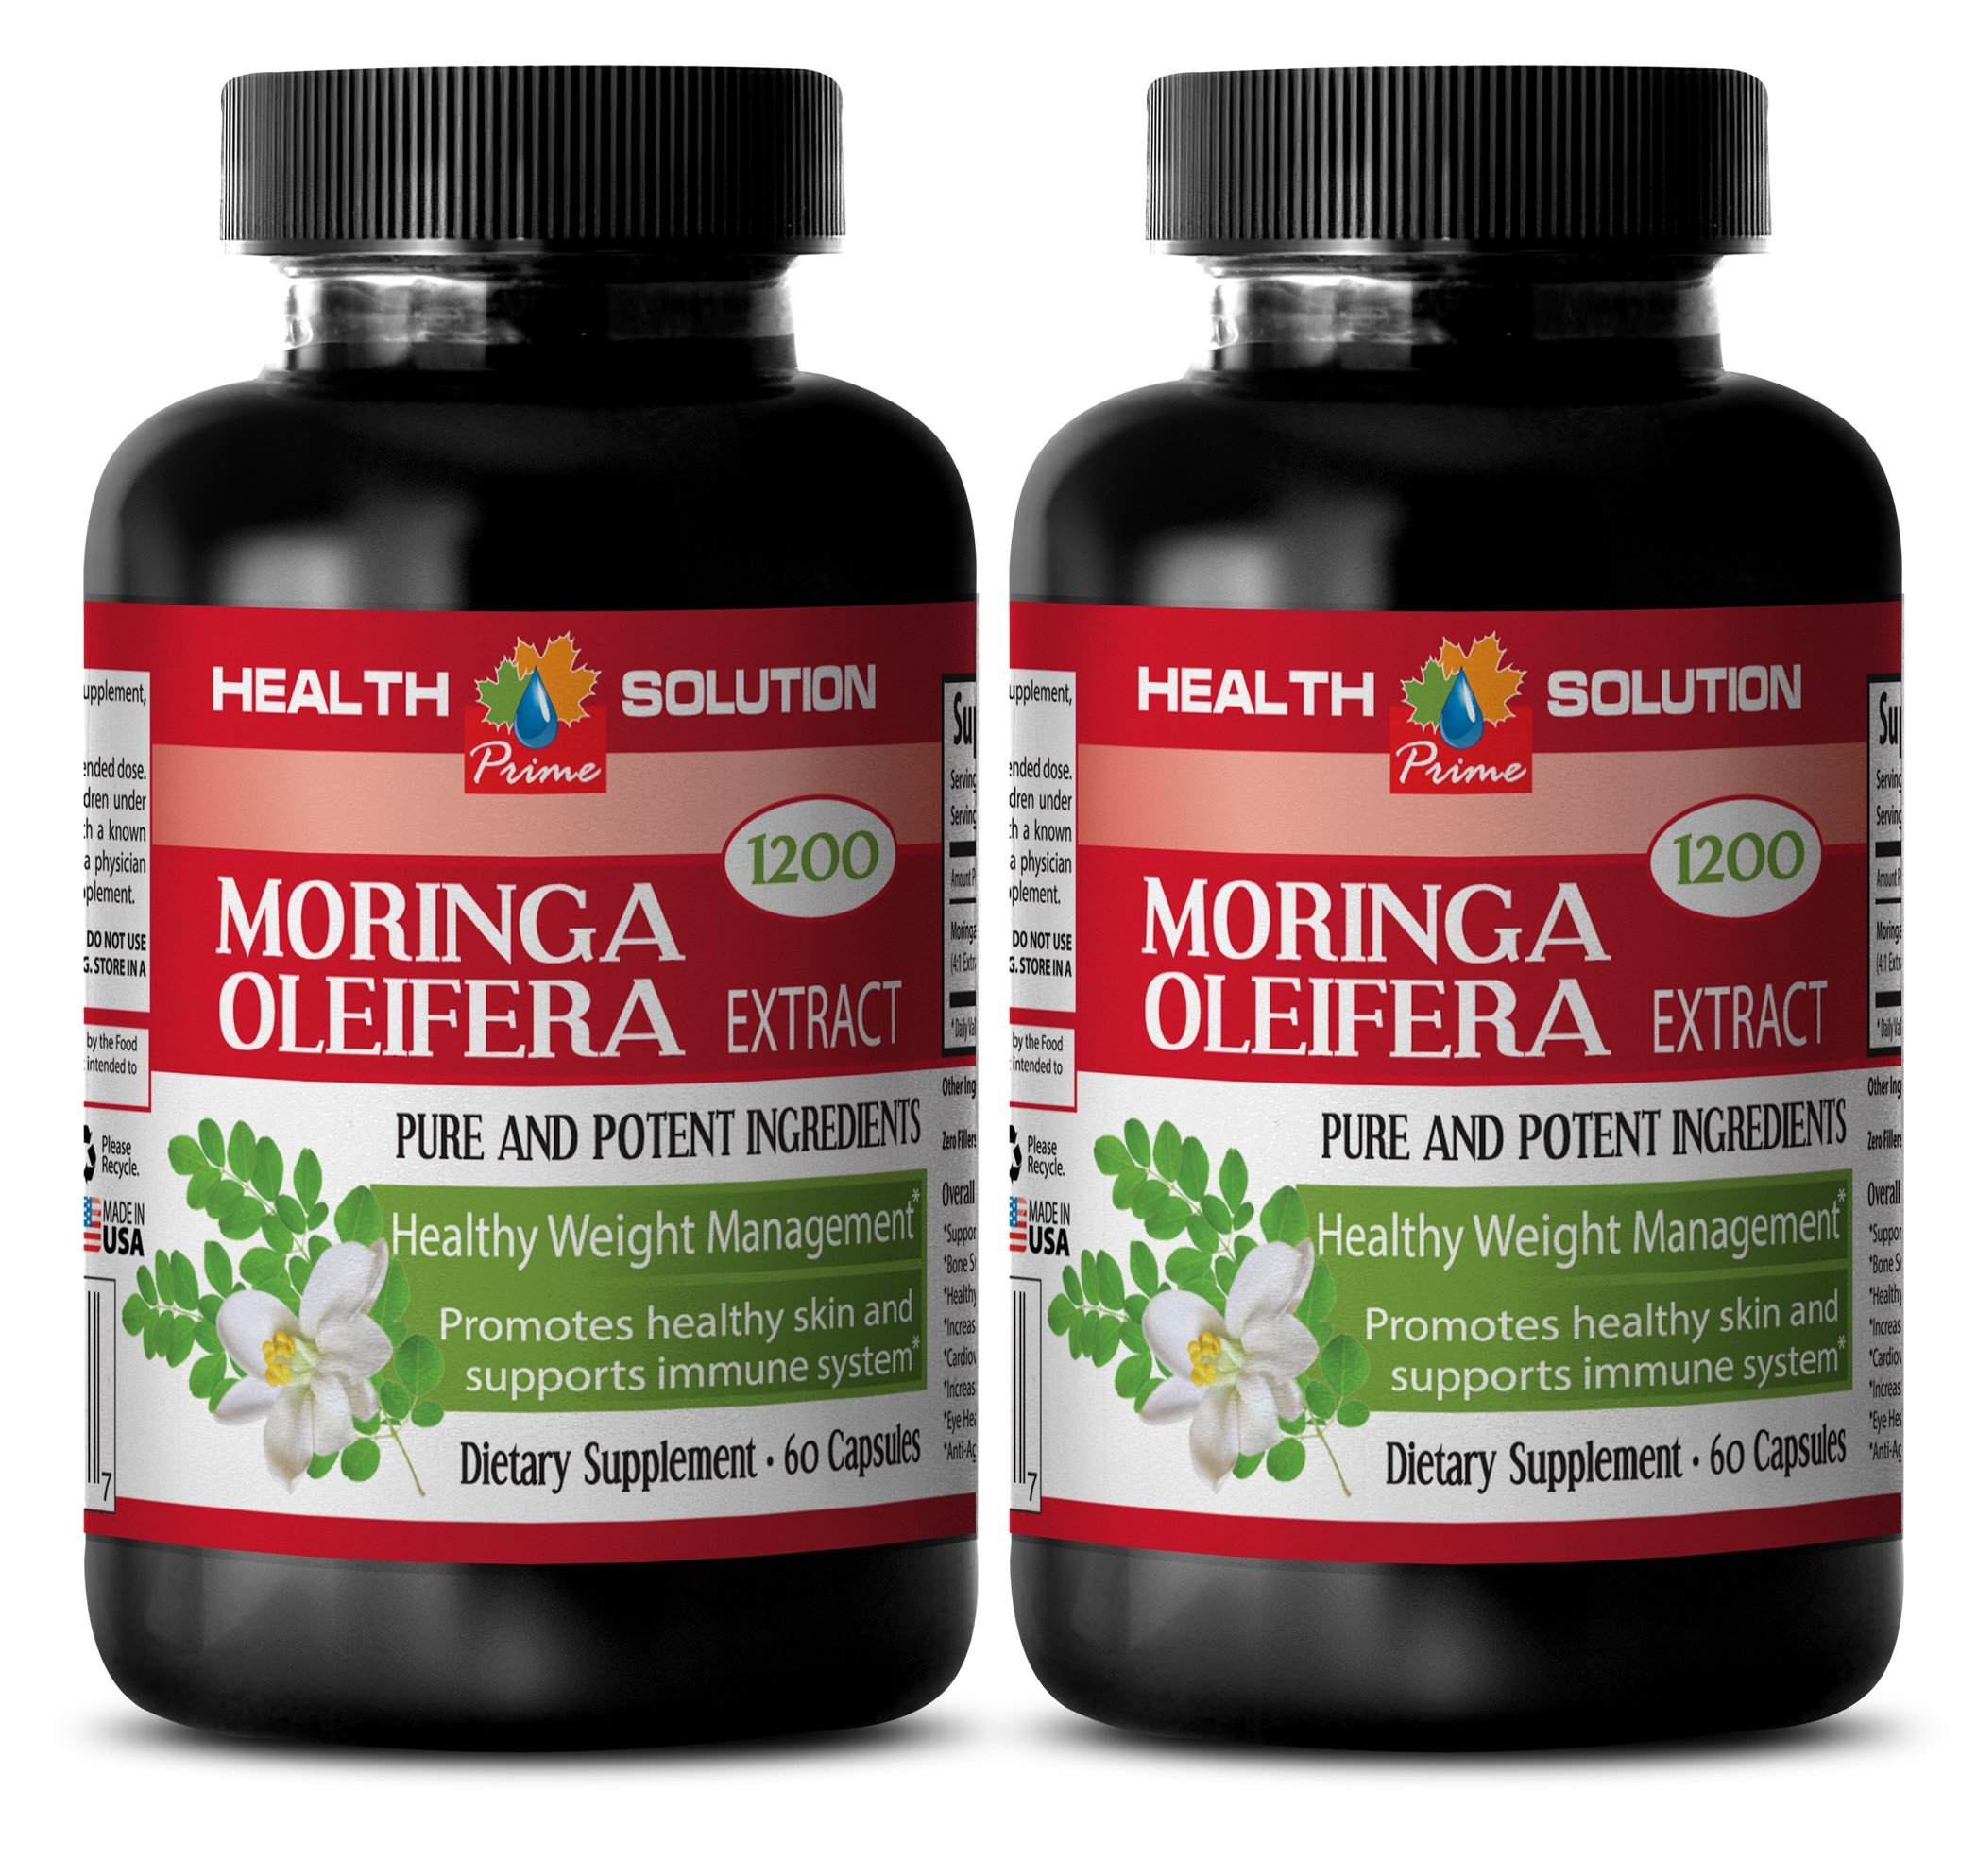 Moringa Organic Powder - MORINGA OLEIFERA EXTRACT 1200 - Pure Skin Clarifying Dietary Supplement 3 Bottles, 180 Capsules by Health Solution Prime (Image #4)